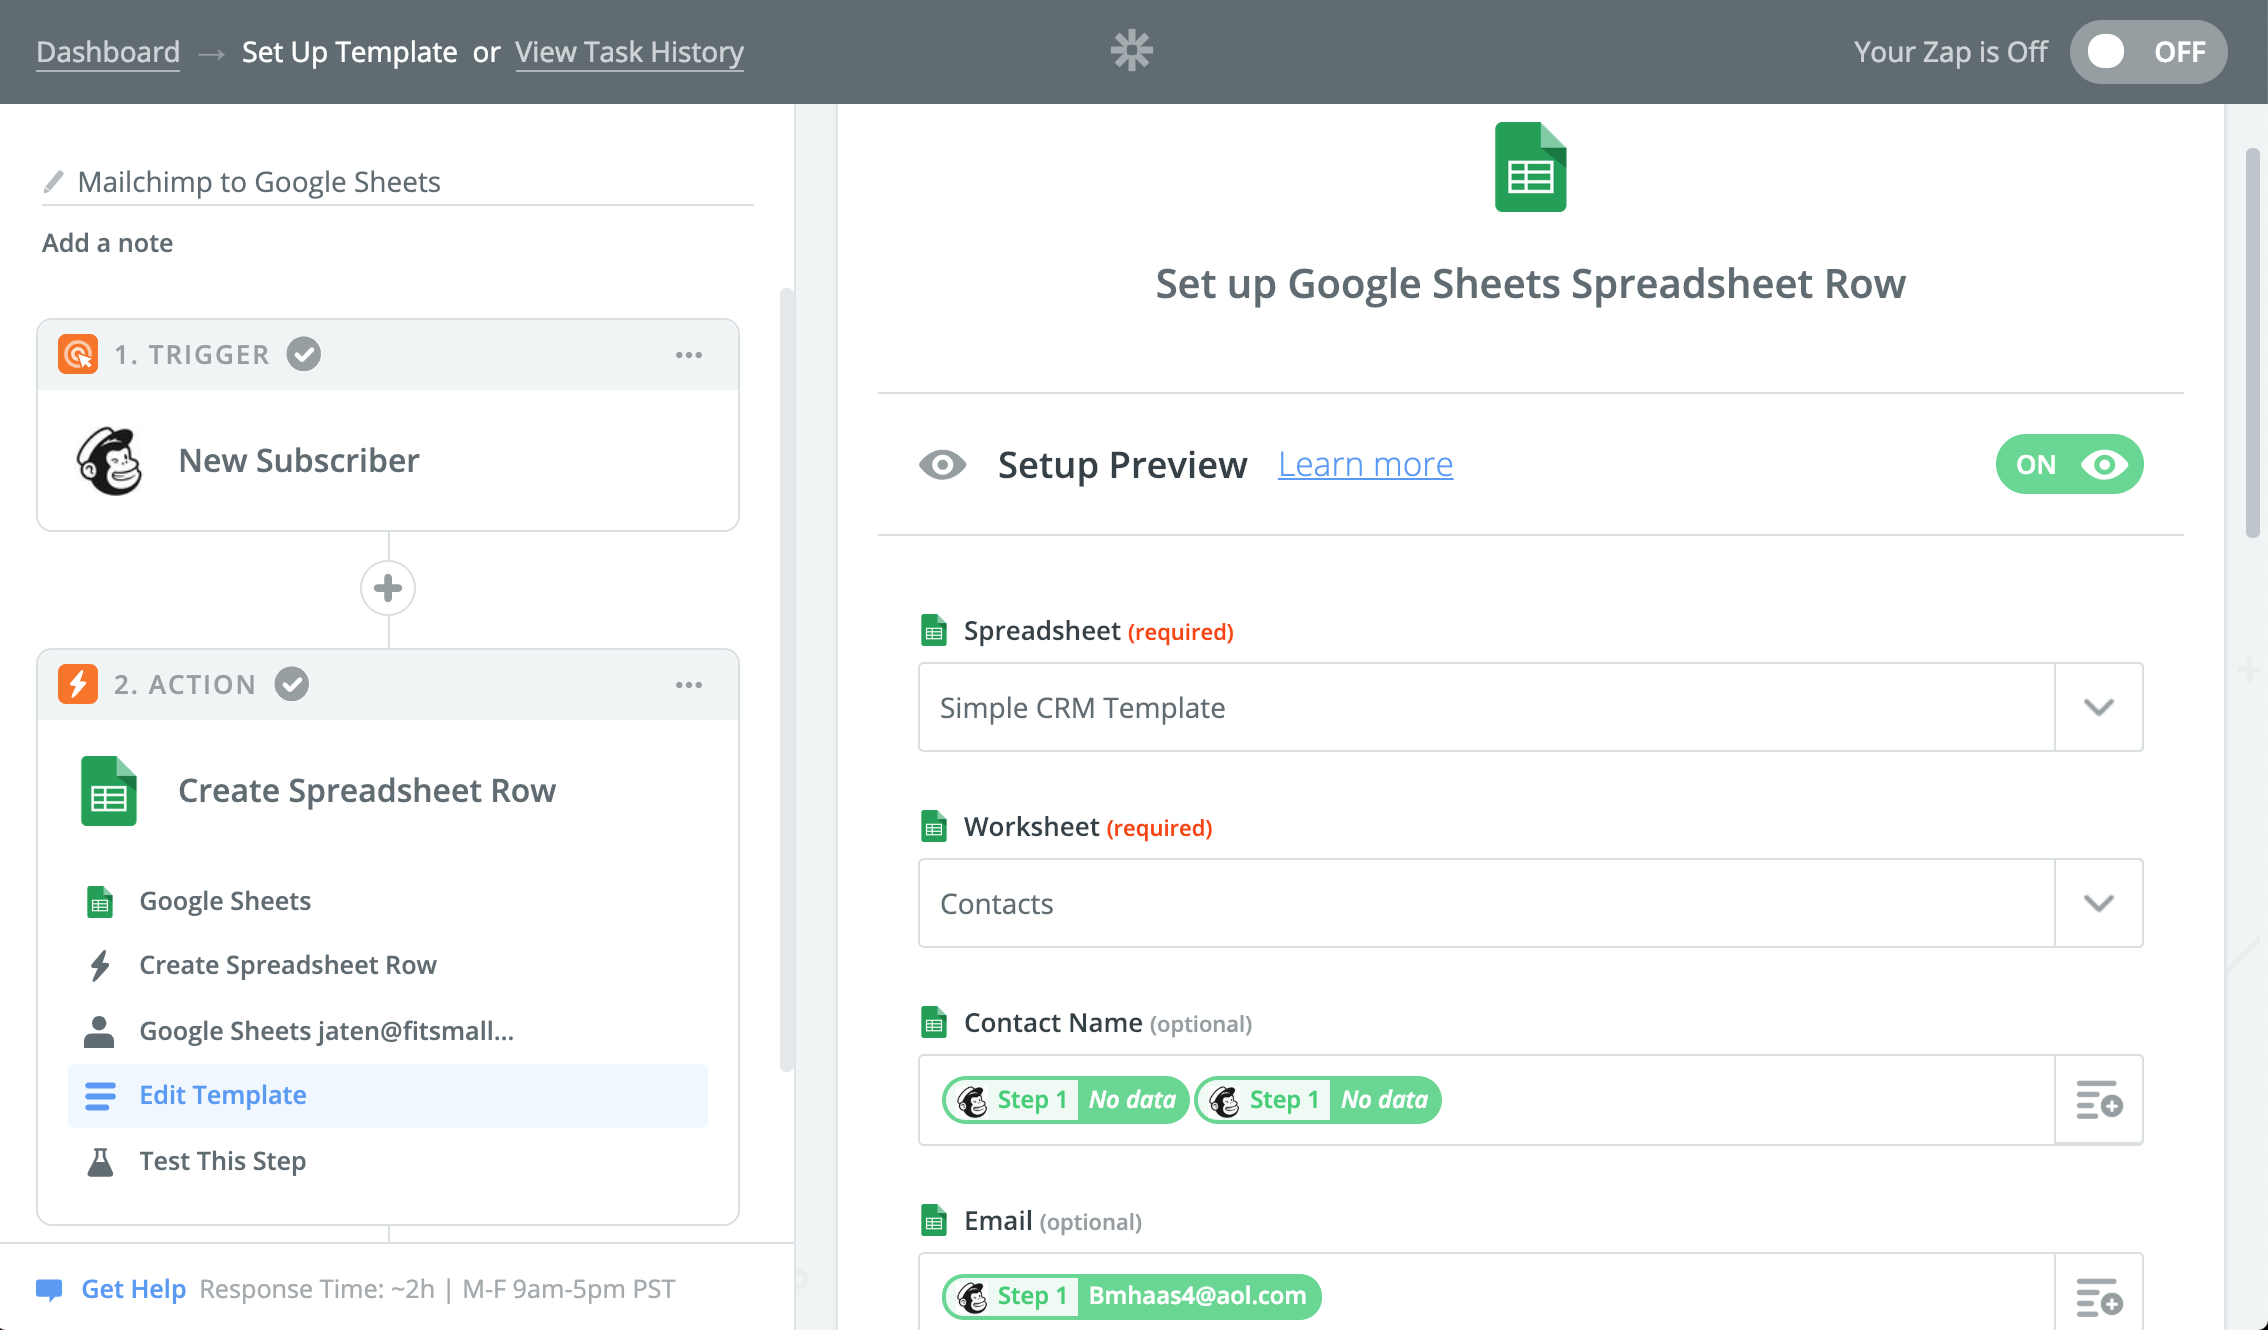 Mailchimp to Google Sheets integration with Zapier